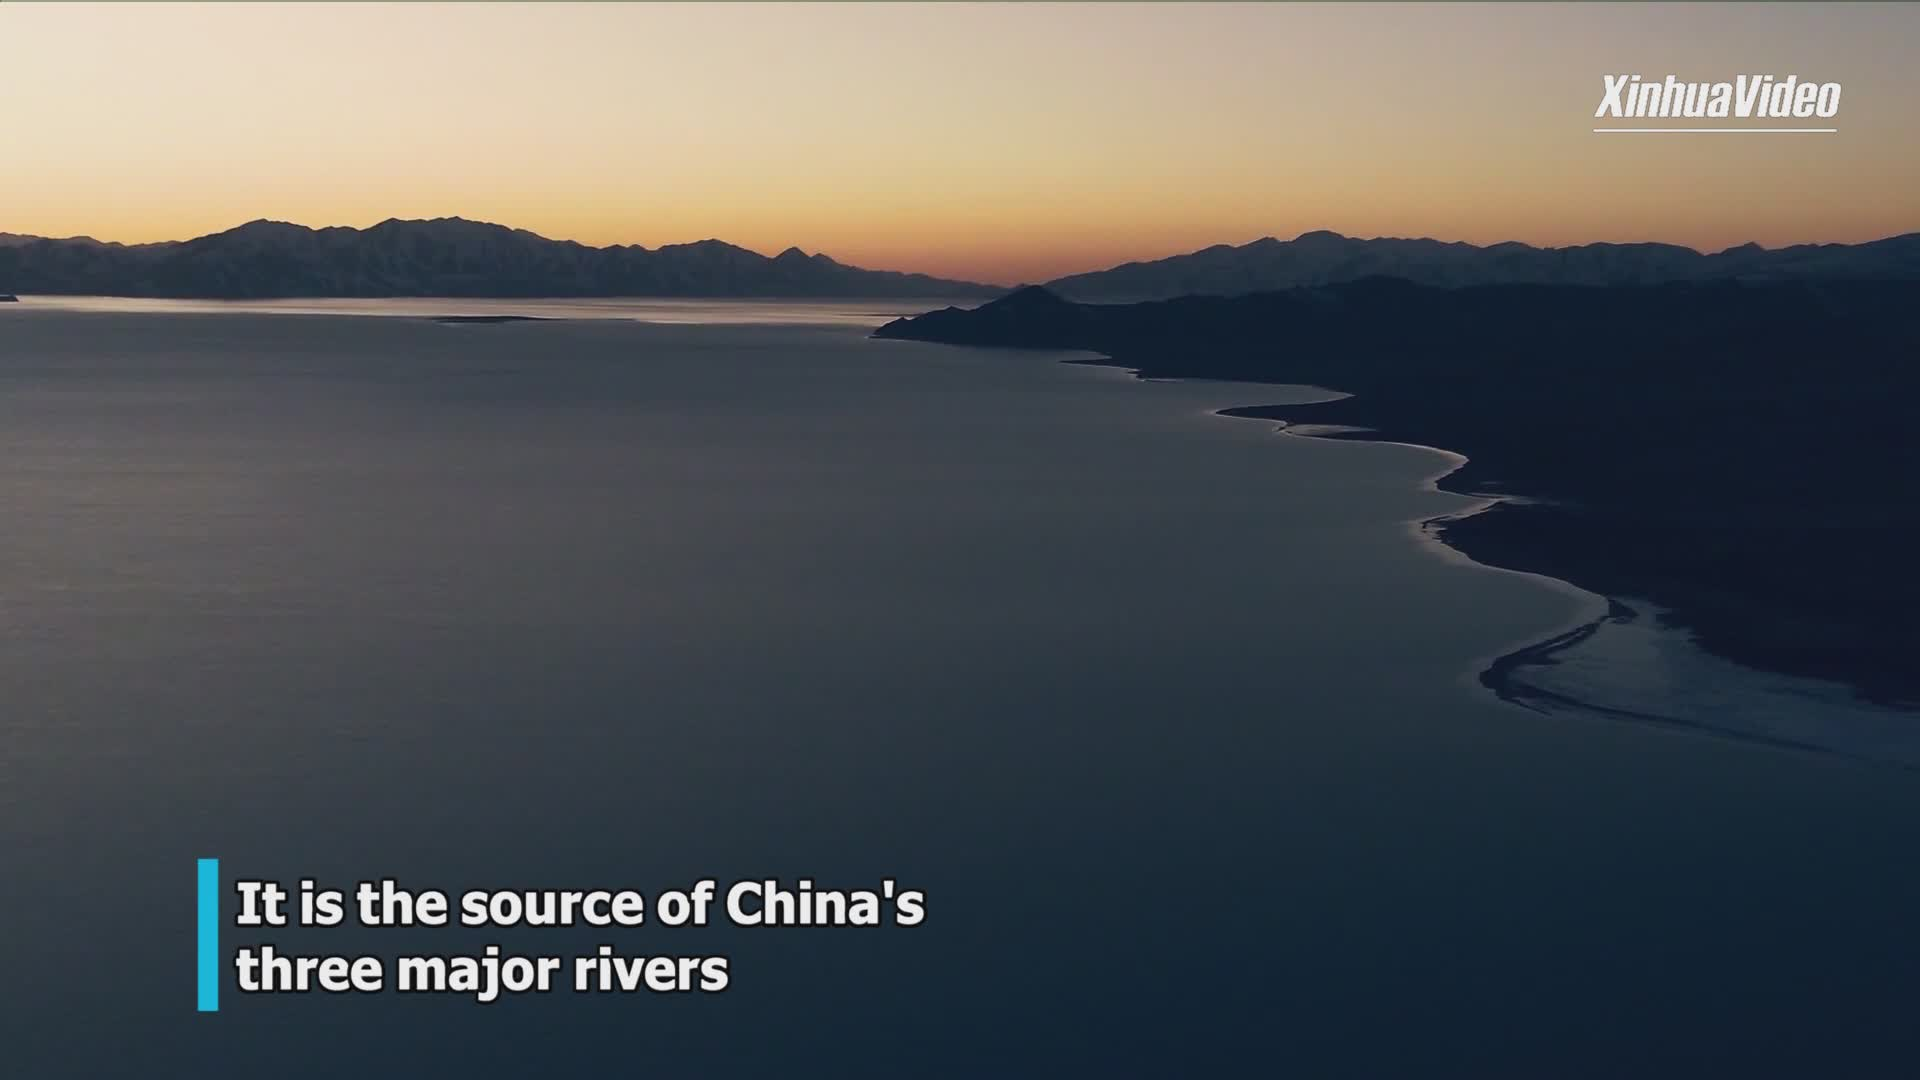 China's Sanjiangyuan region benefits from clean heating